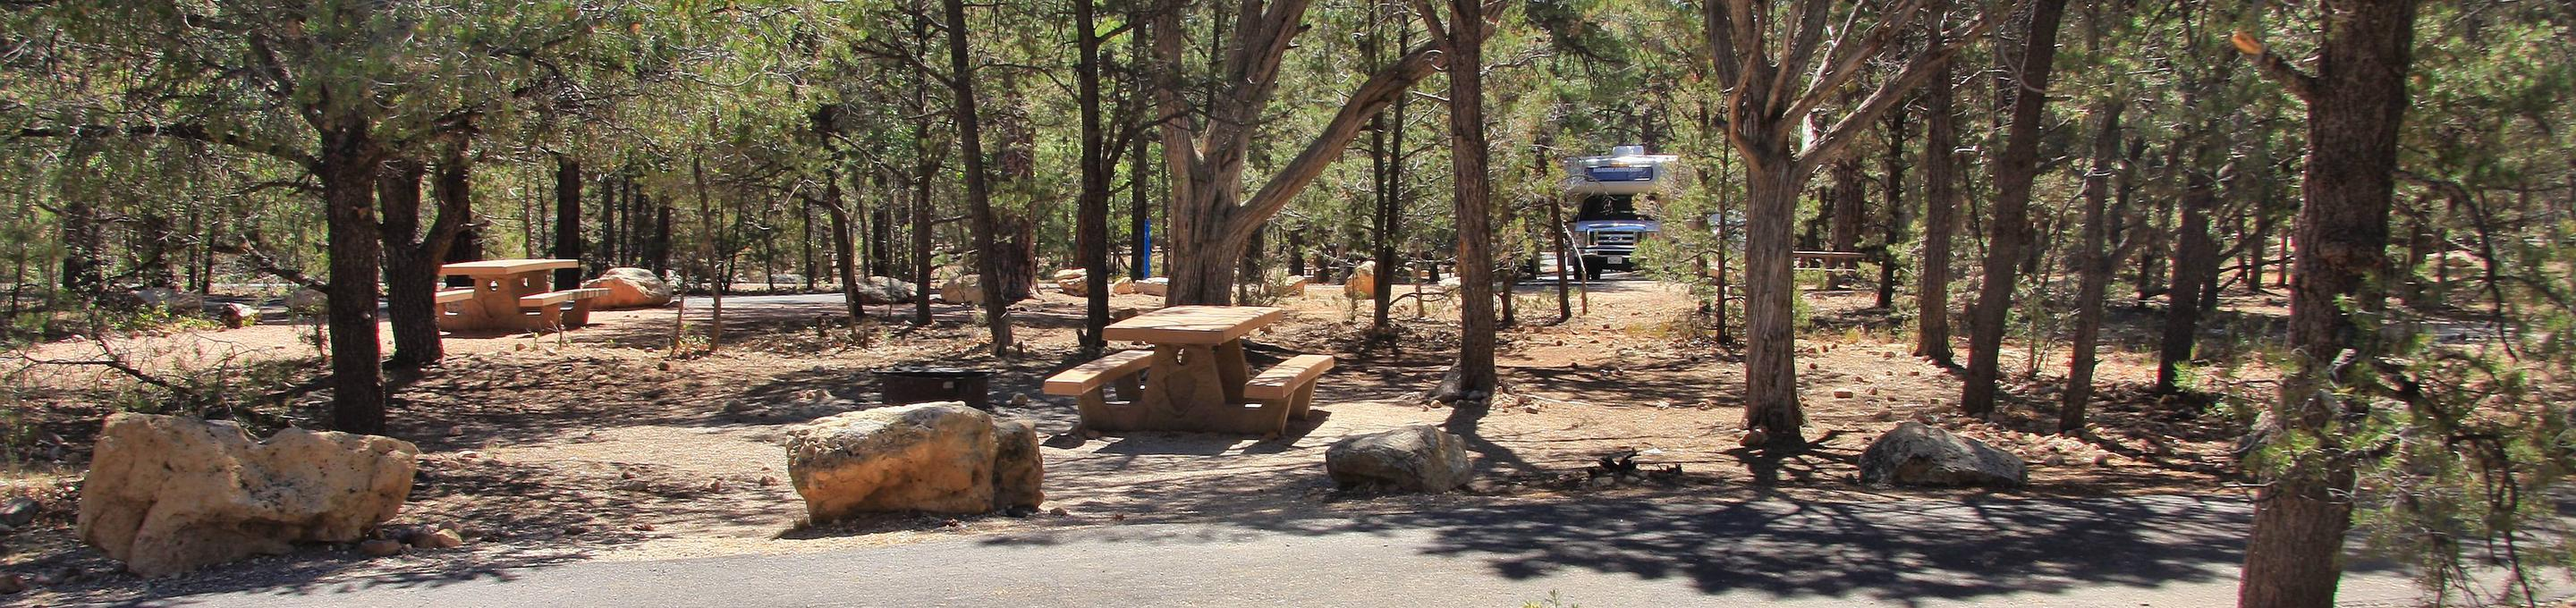 Picnic table, fire pit, and parking spot, Mather CampgroundThe picnic table, fire pit, and parking spot for Aspen Loop 36, Mather Campground